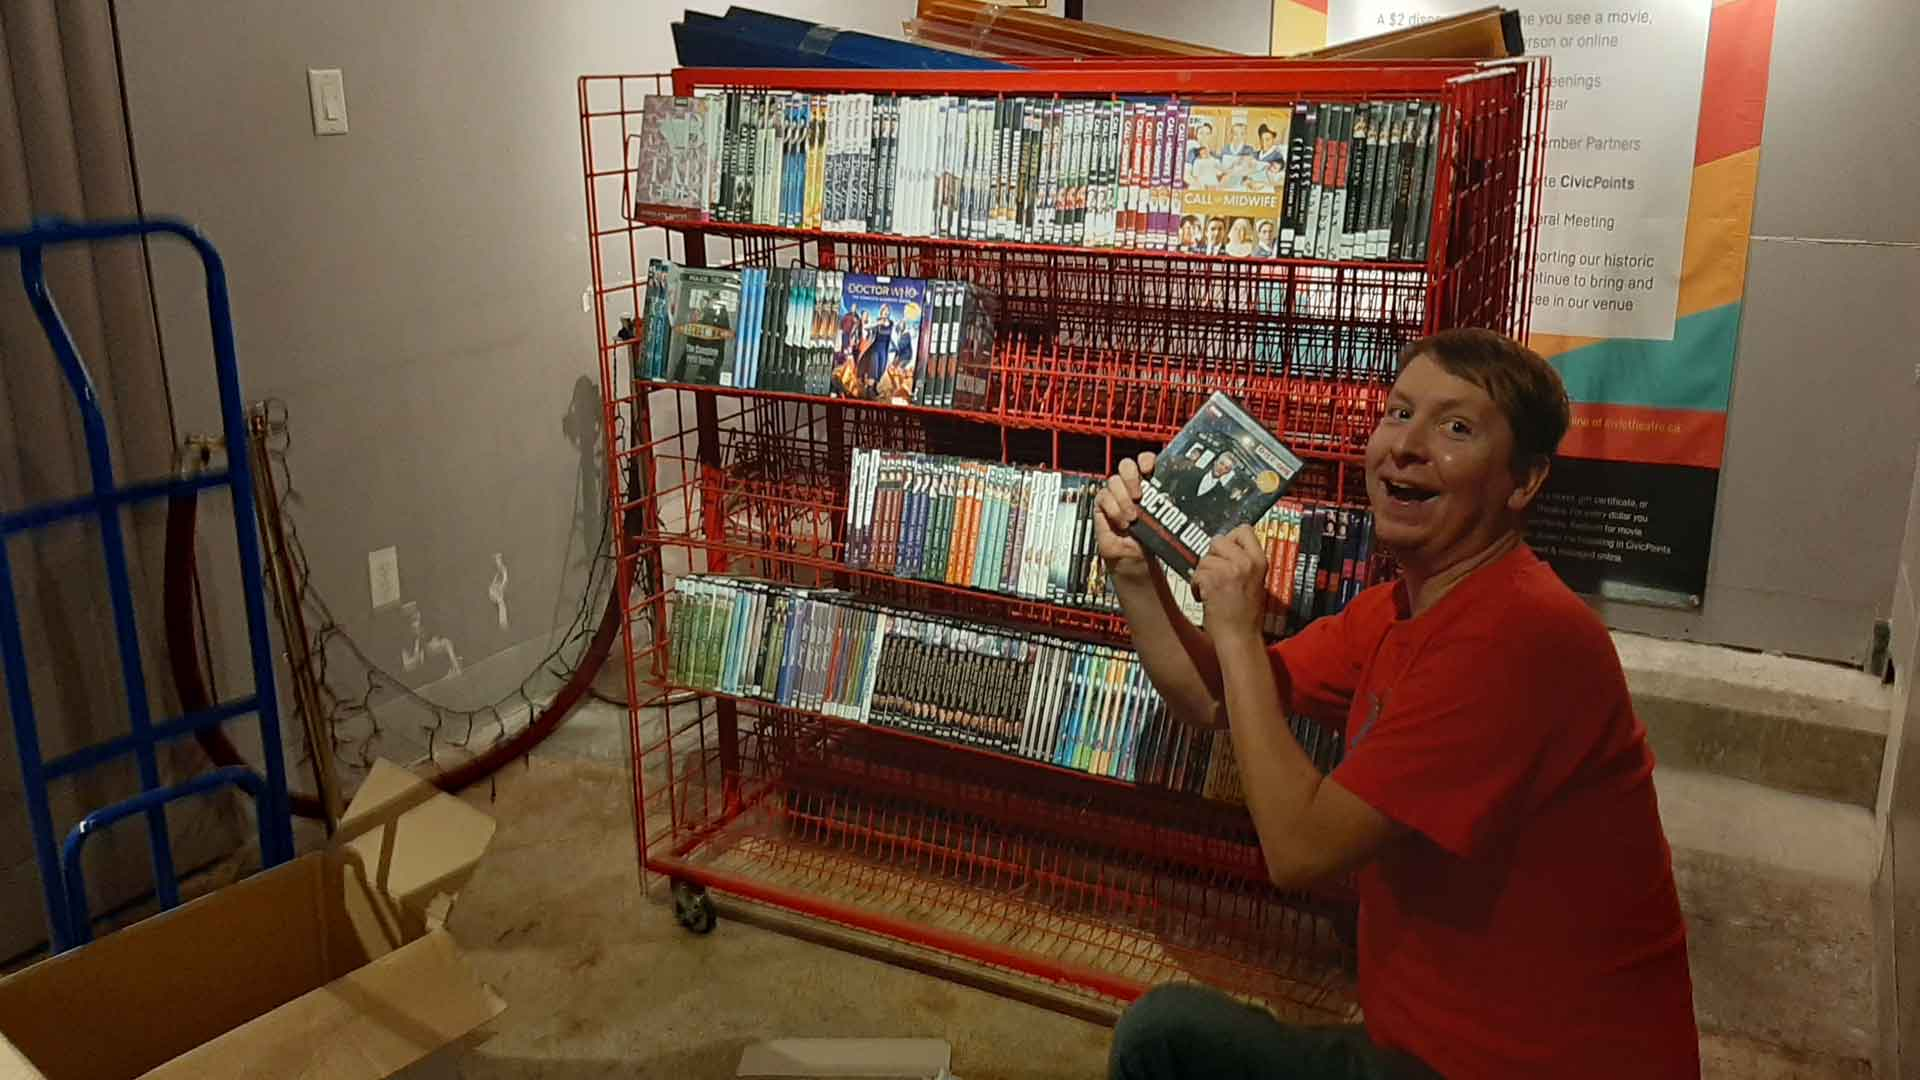 Reos Video - Cole holding DVDs in front of red shelves